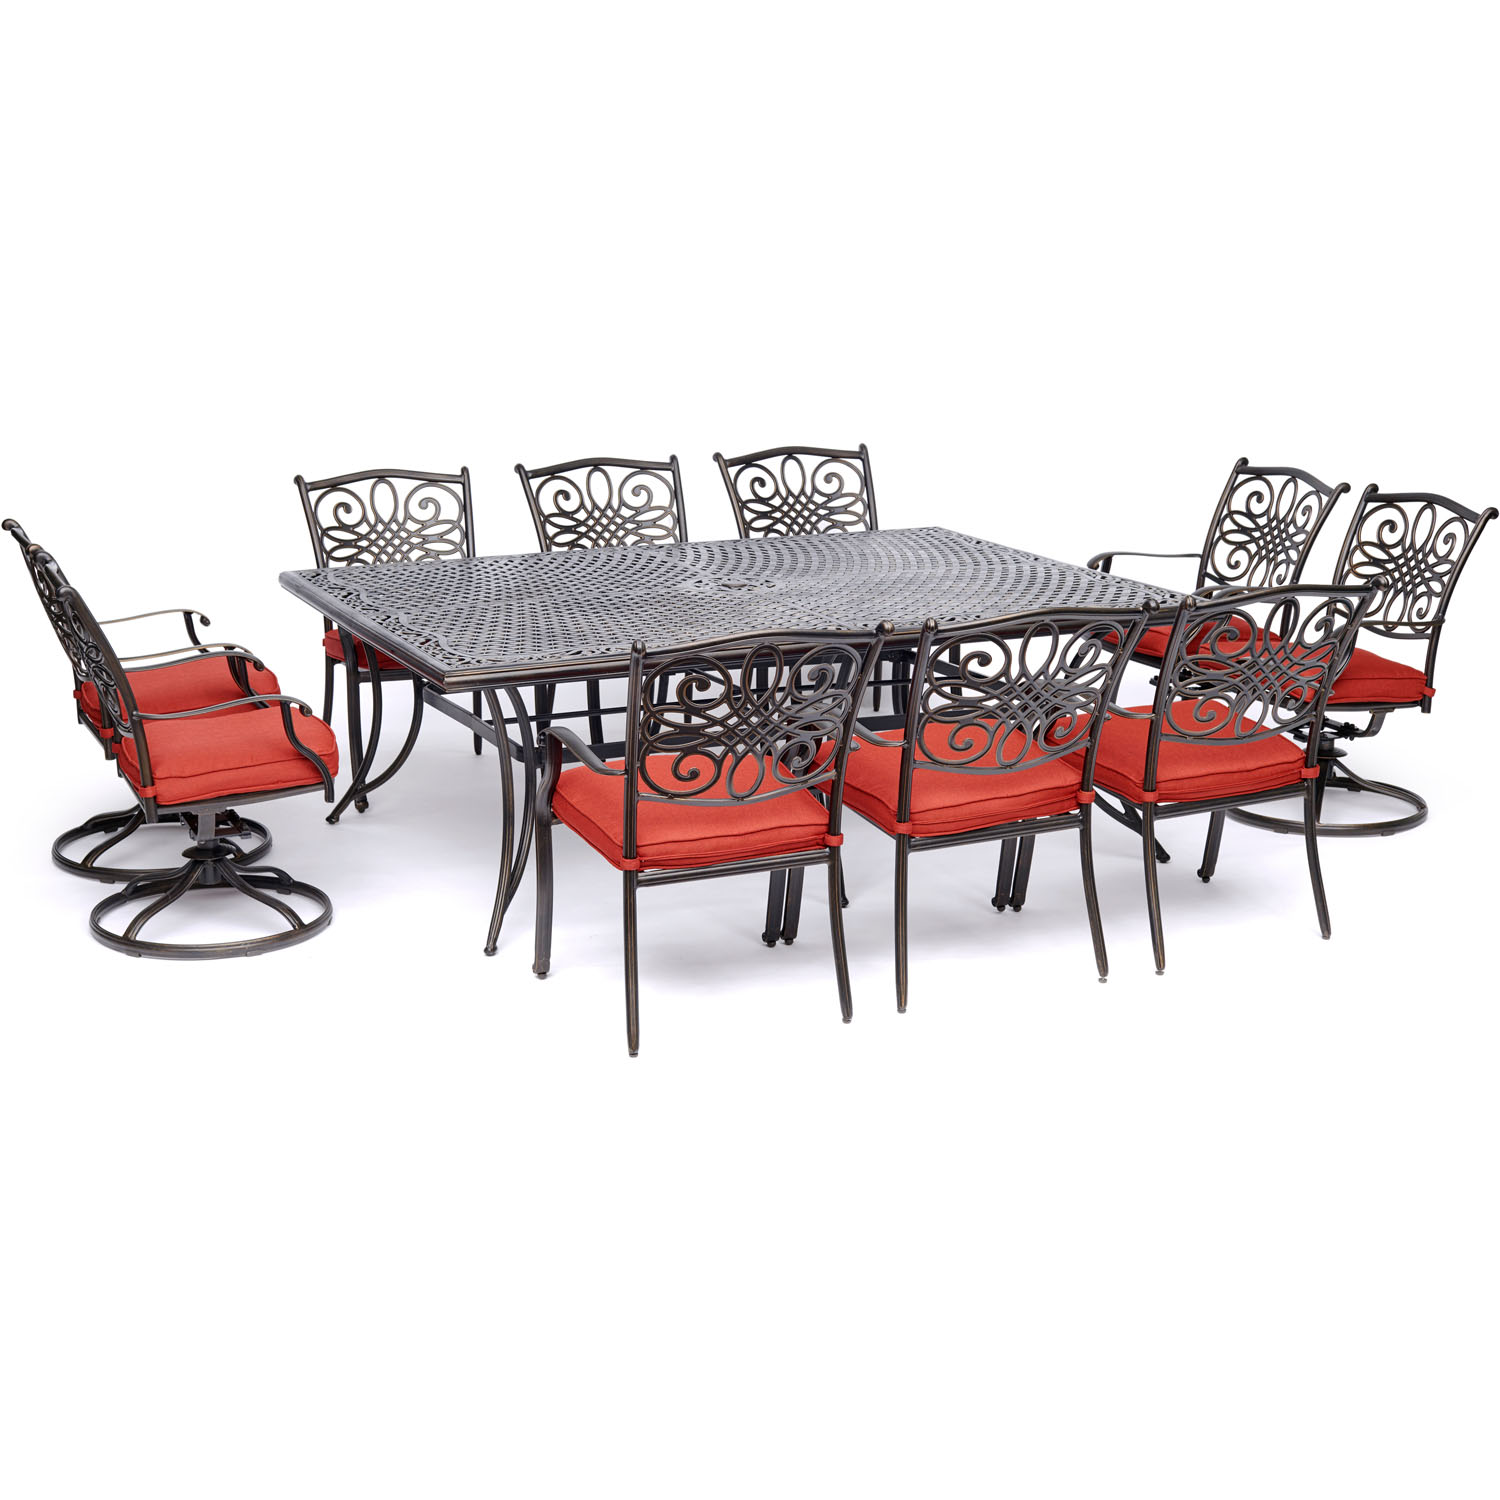 Hanover Traditions 11-Piece Outdoor Dining Set with Cast-Top Table, 4 Swivel Rockers and 6 Stationary Chairs